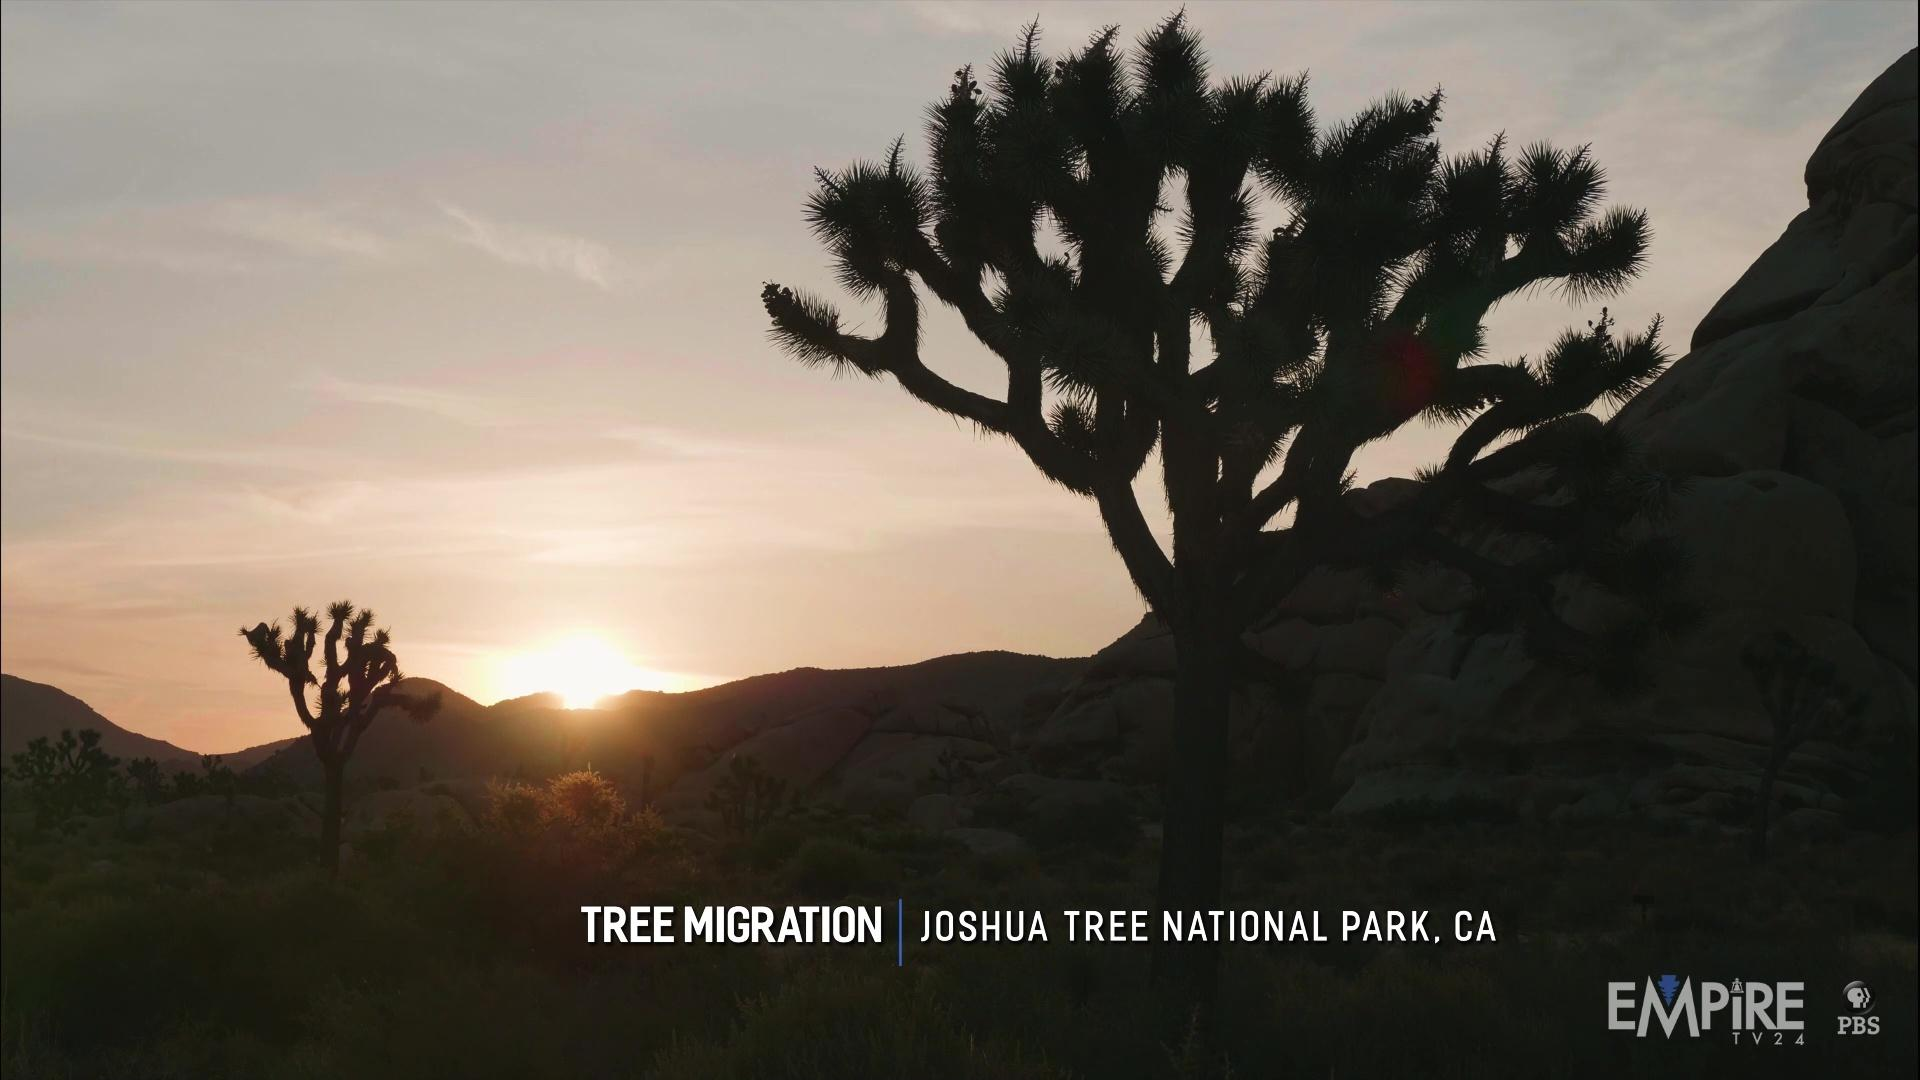 Joshua Tree Migration